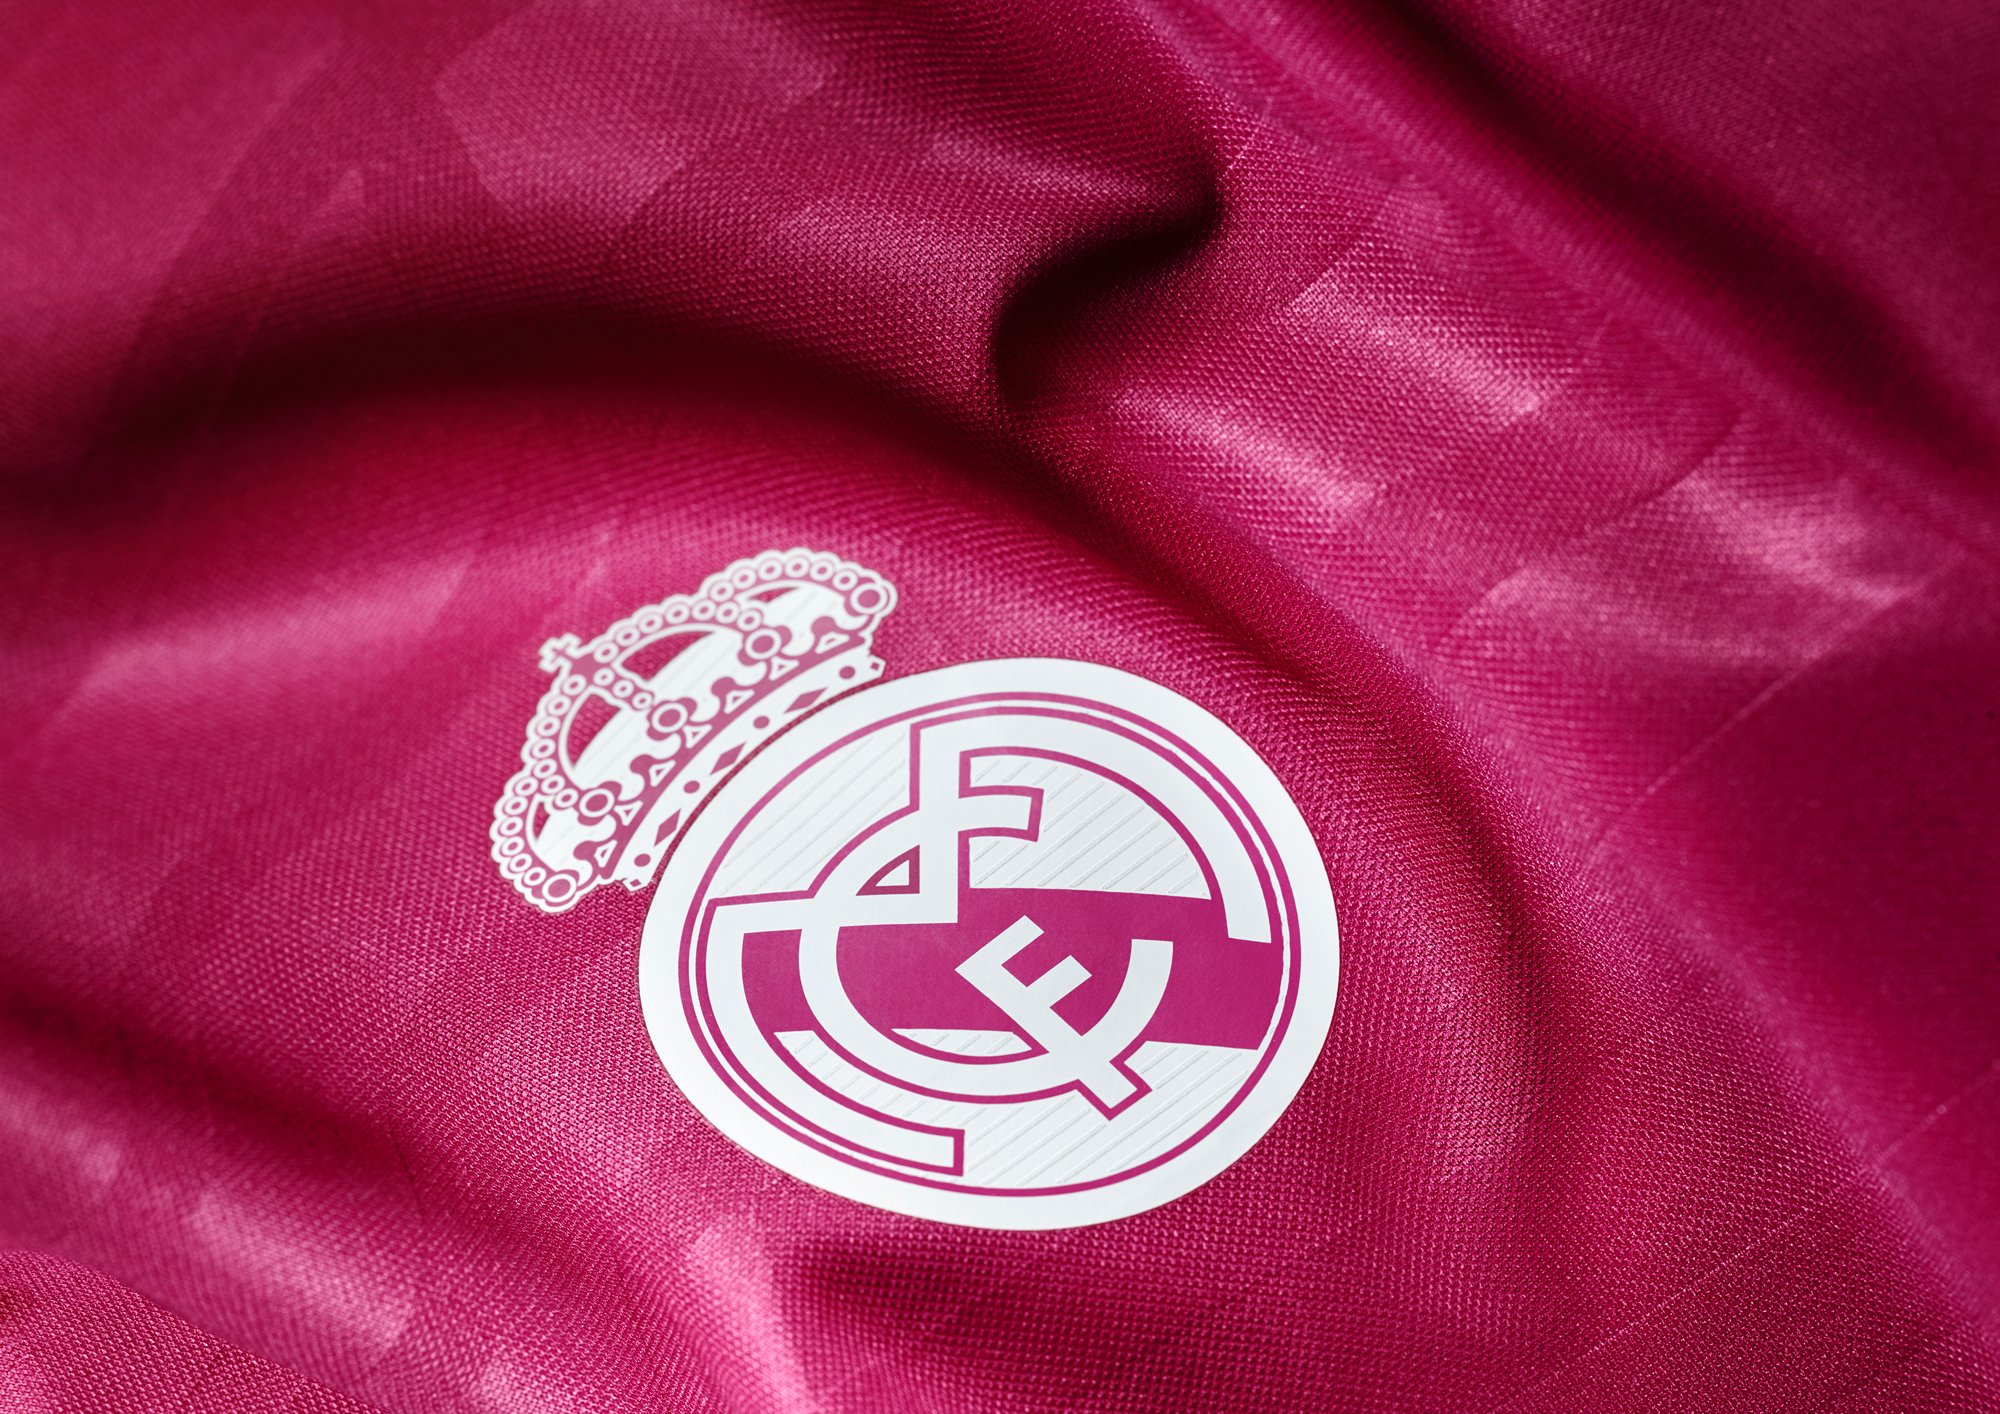 adidas-real-madrid-away-kit-crest